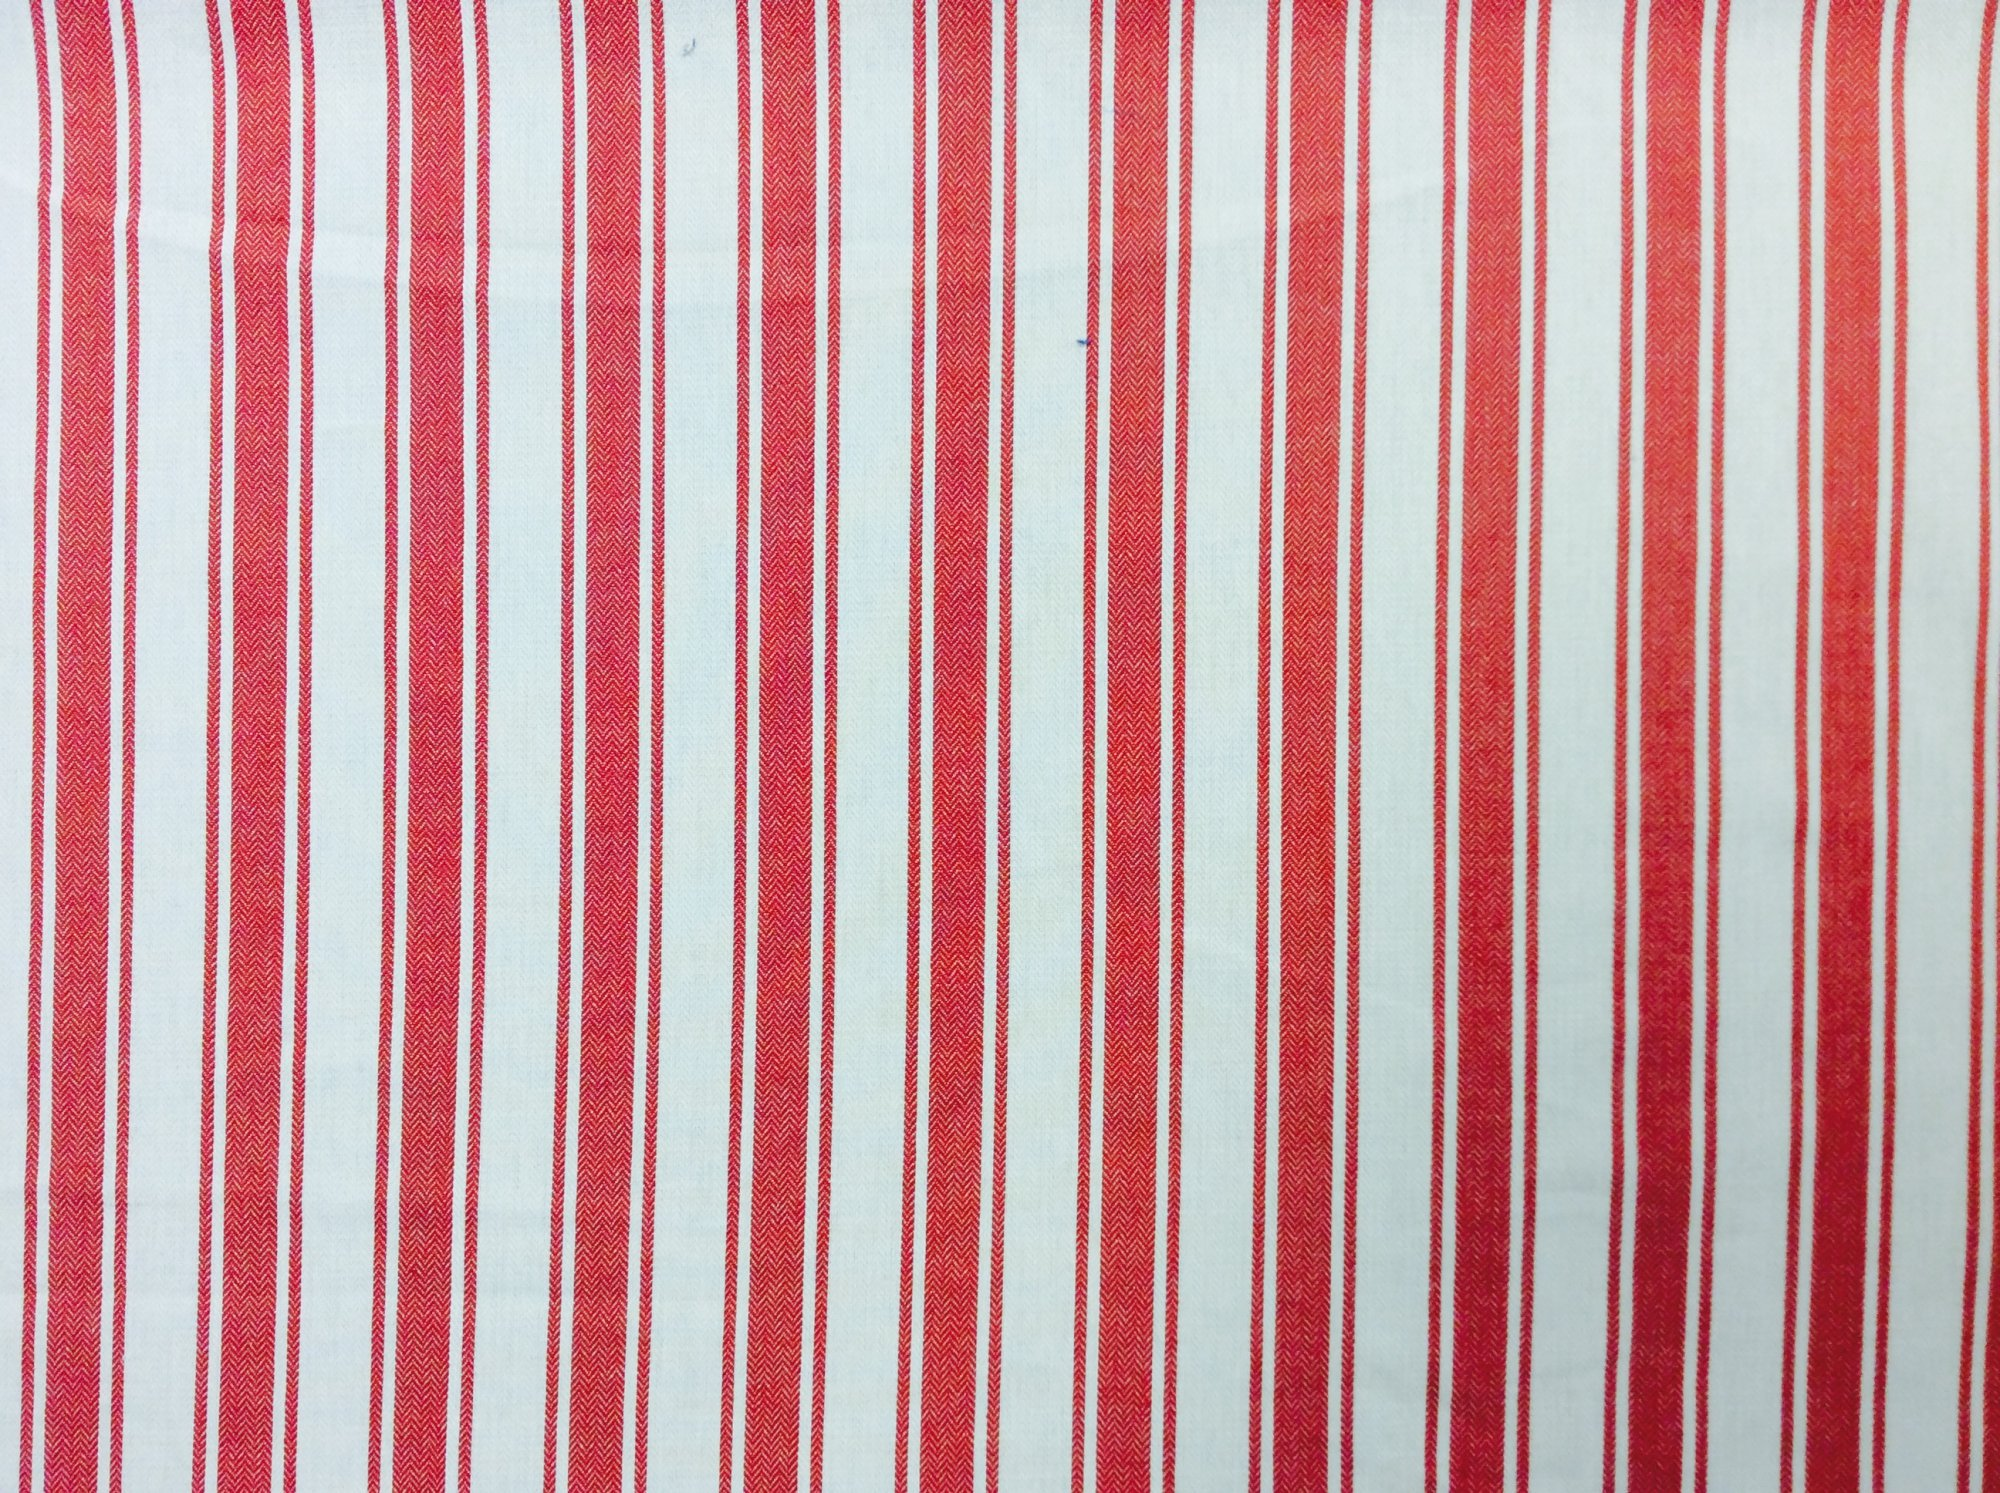 Red and Off-White twill woven ticking stripe.  Home decor. Drapery Apparel Fabric. CAR1501